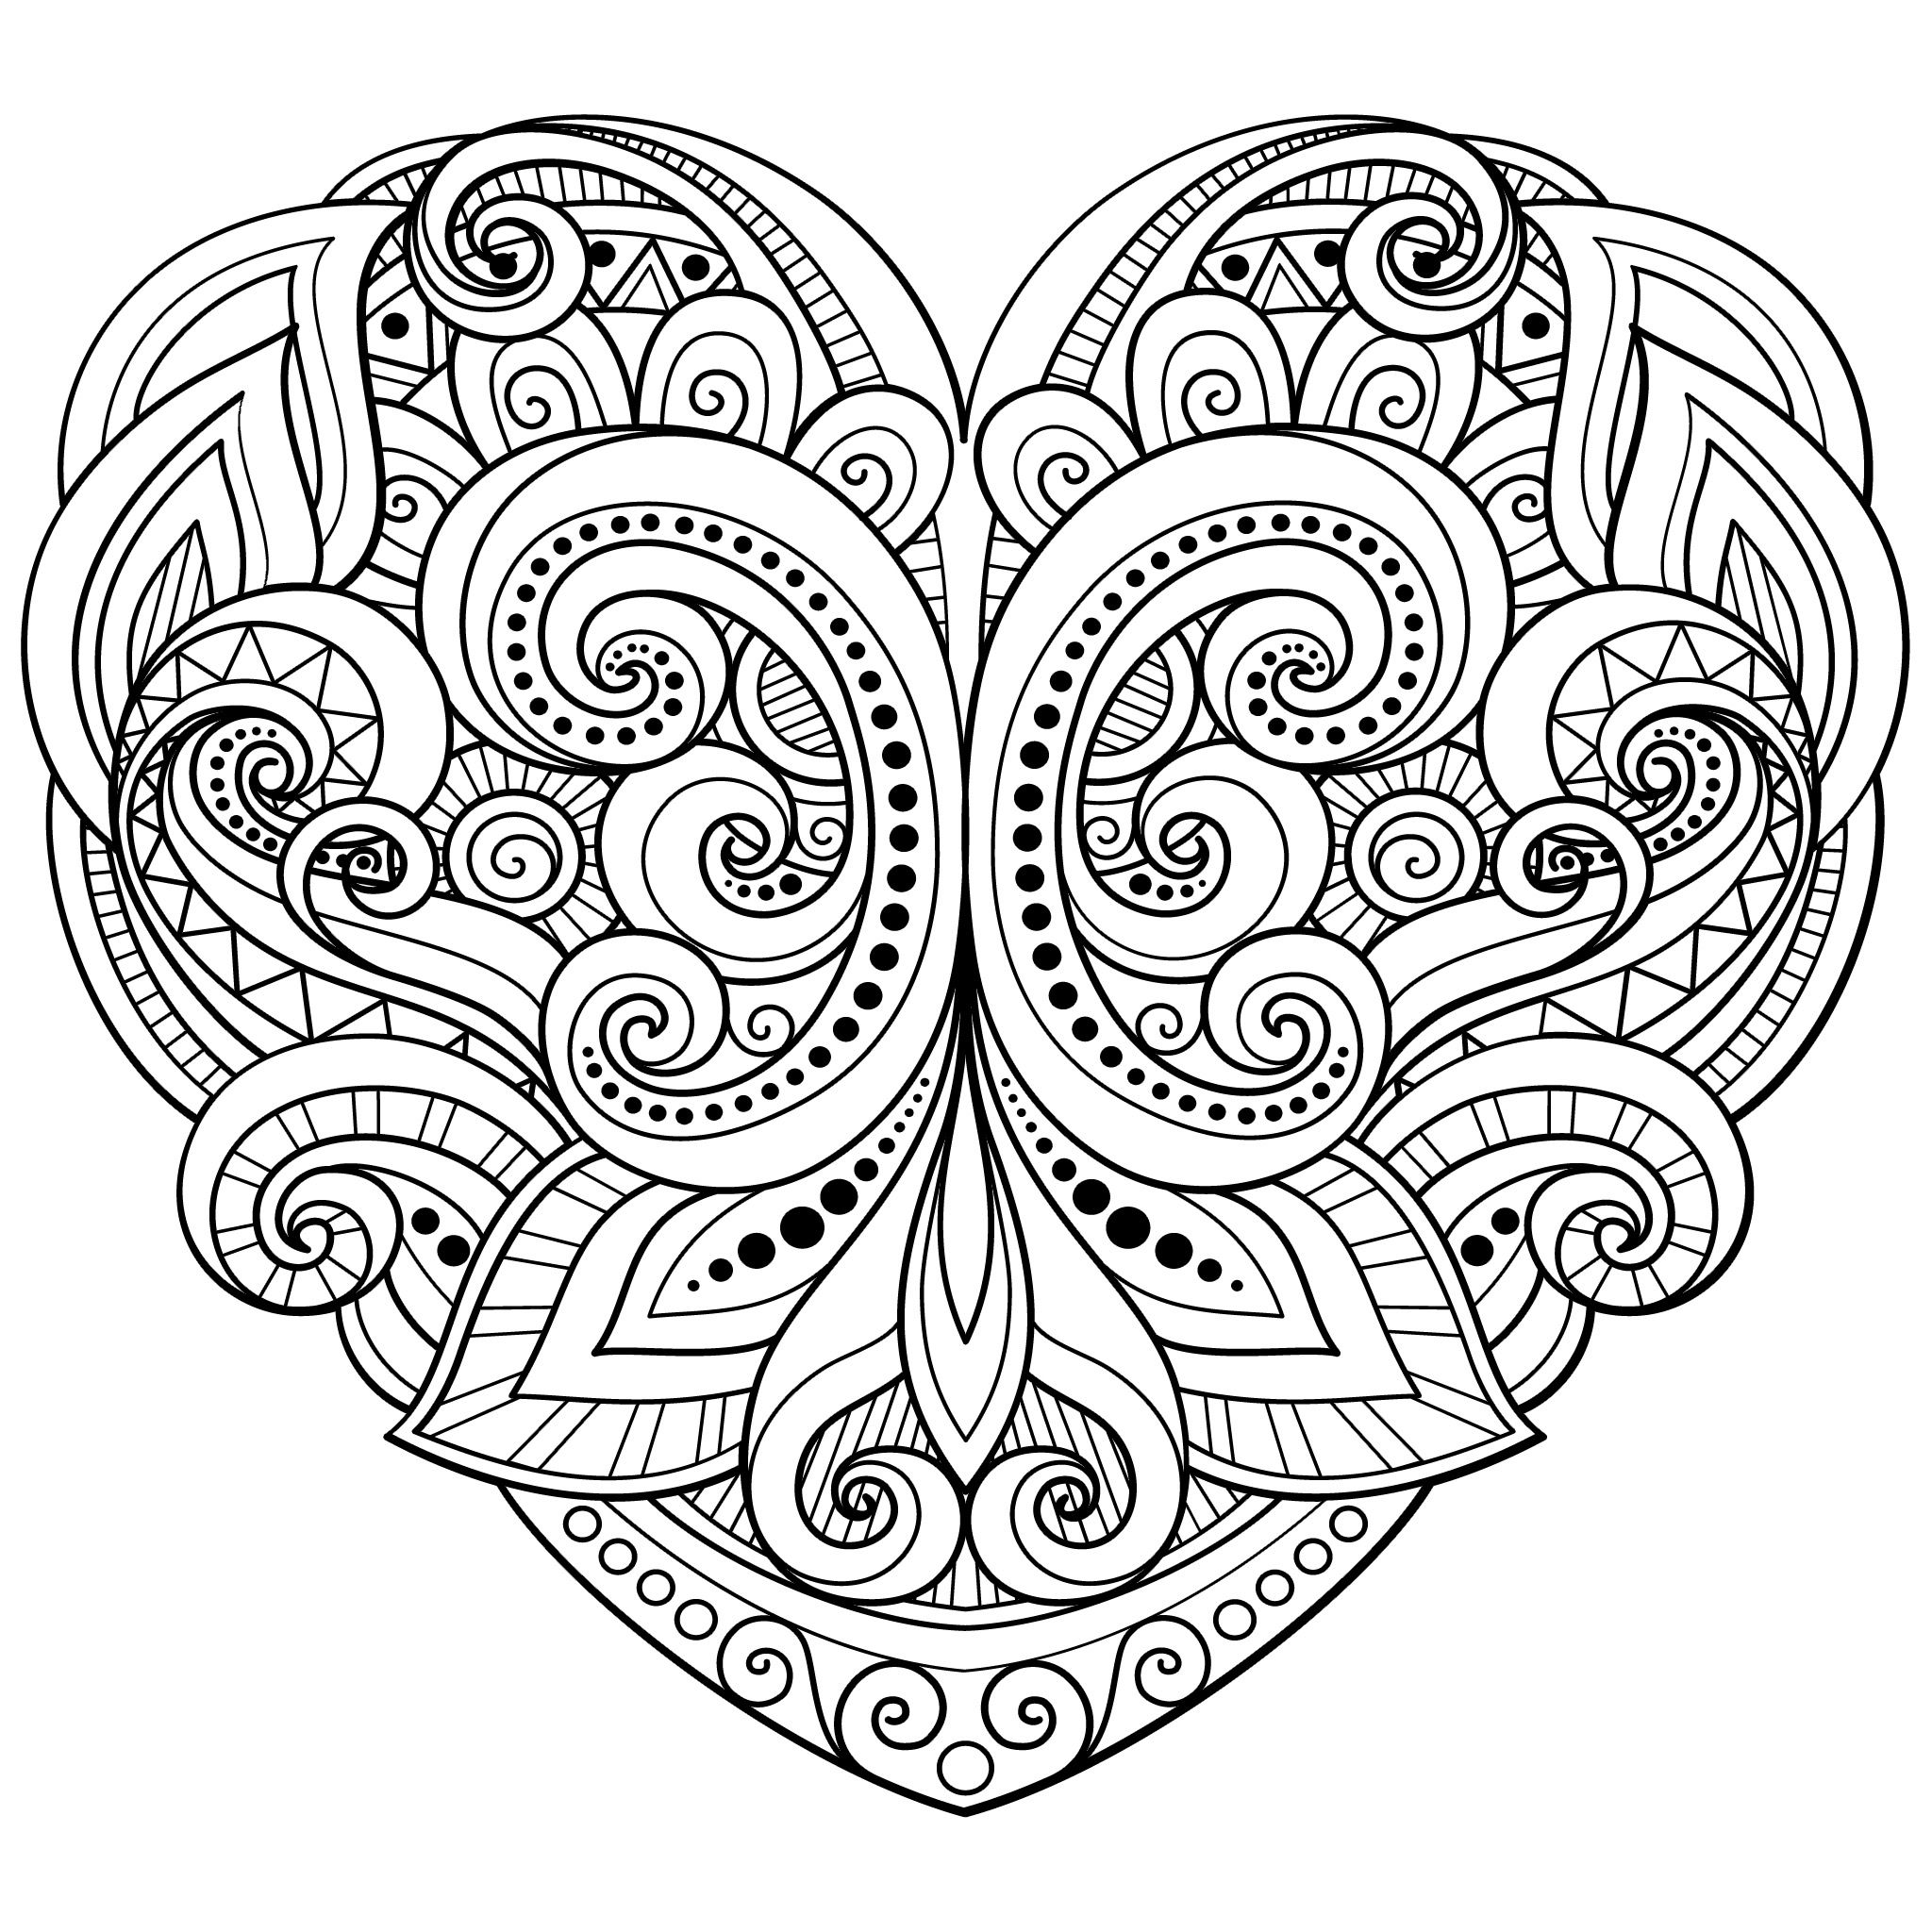 Love heart coloring page Heart coloring pages, Love